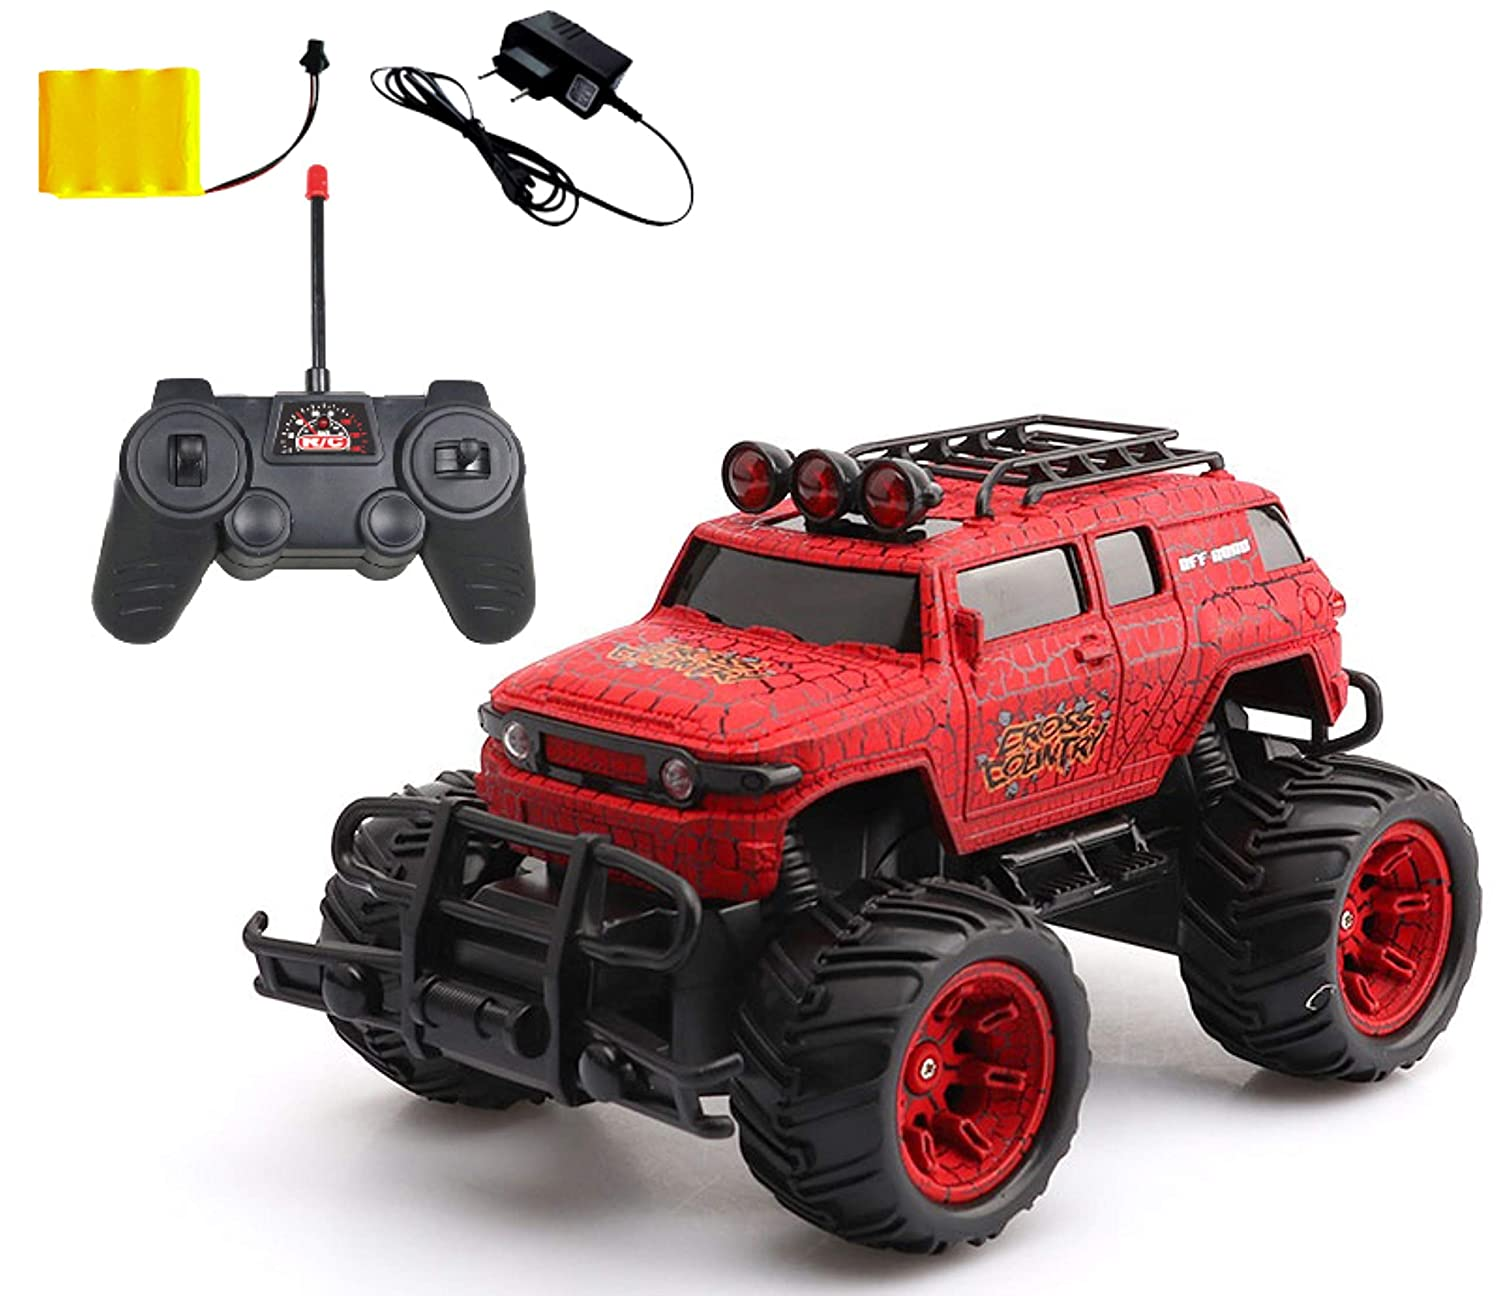 Popsugar 1:20 Off Roader Monster Truck with Remote Control Rechargeable Toy for Kids